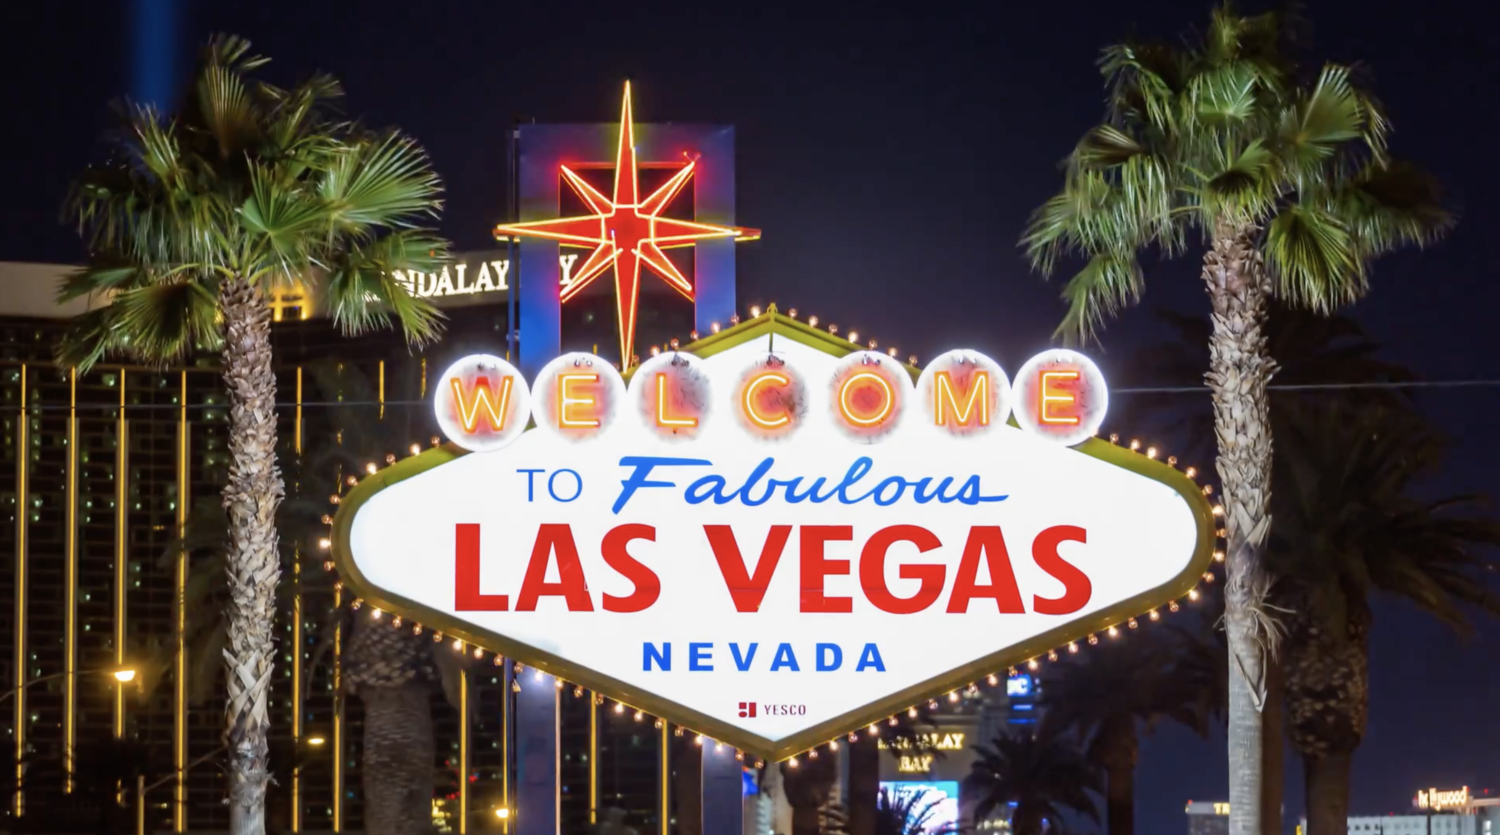 (HD) Welcome to Fabulous Las Vegas Sign at Night.